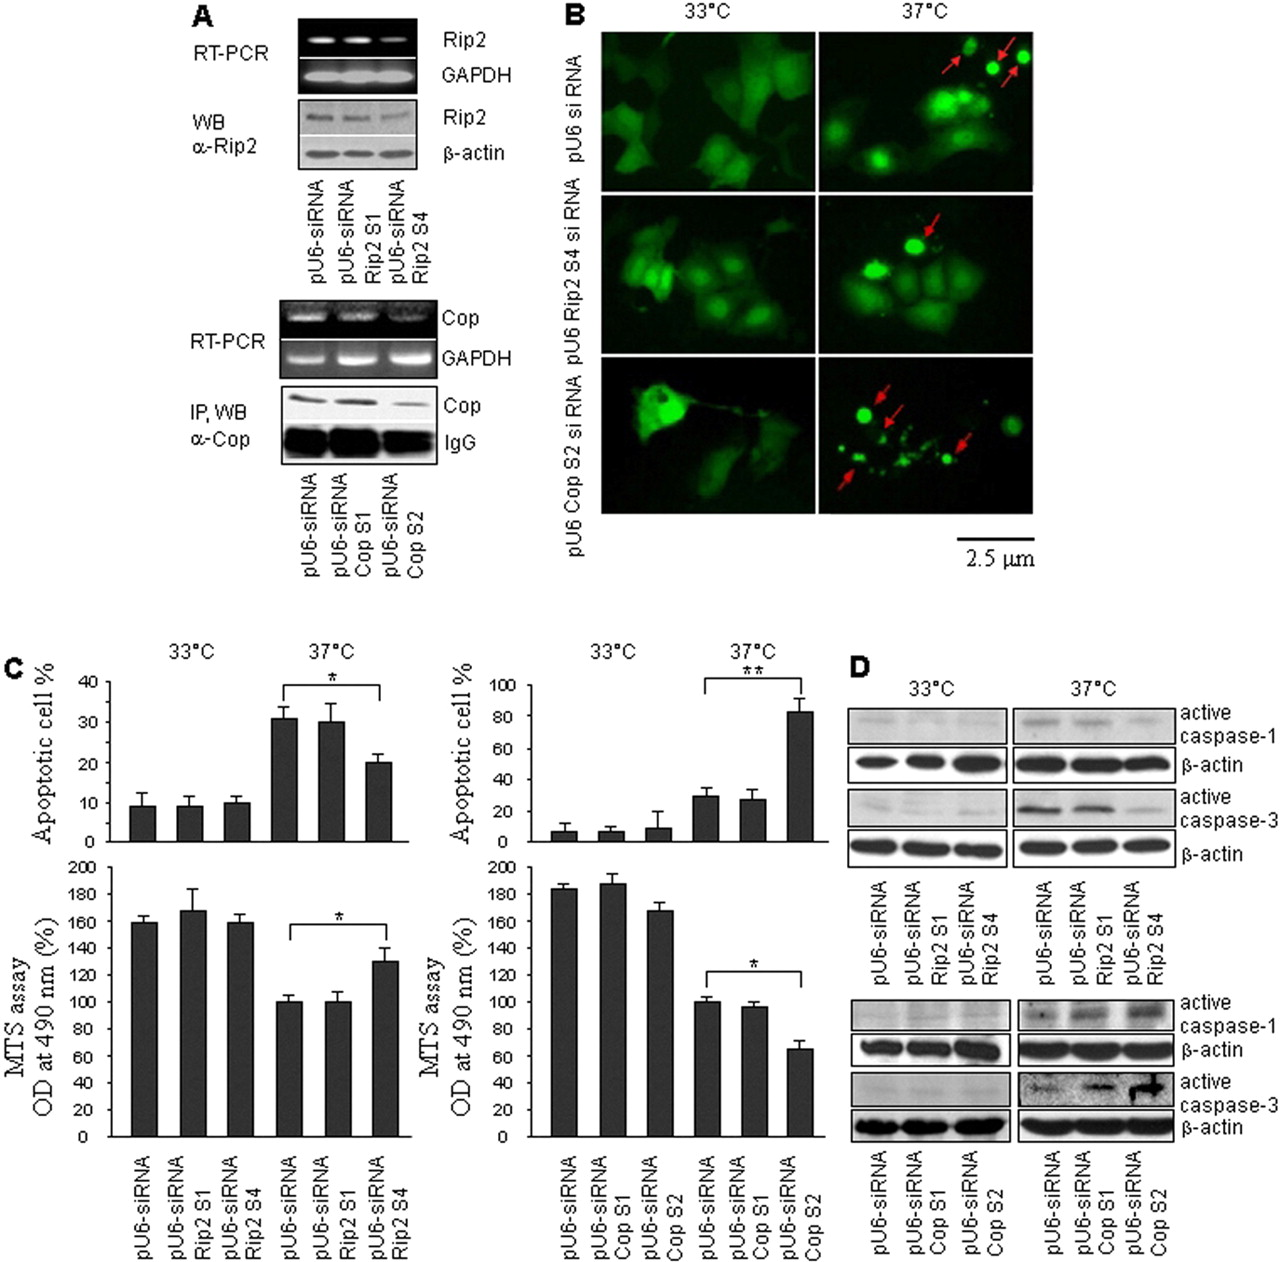 Dysregulation Of Receptor Interacting Protein 2 And Caspase